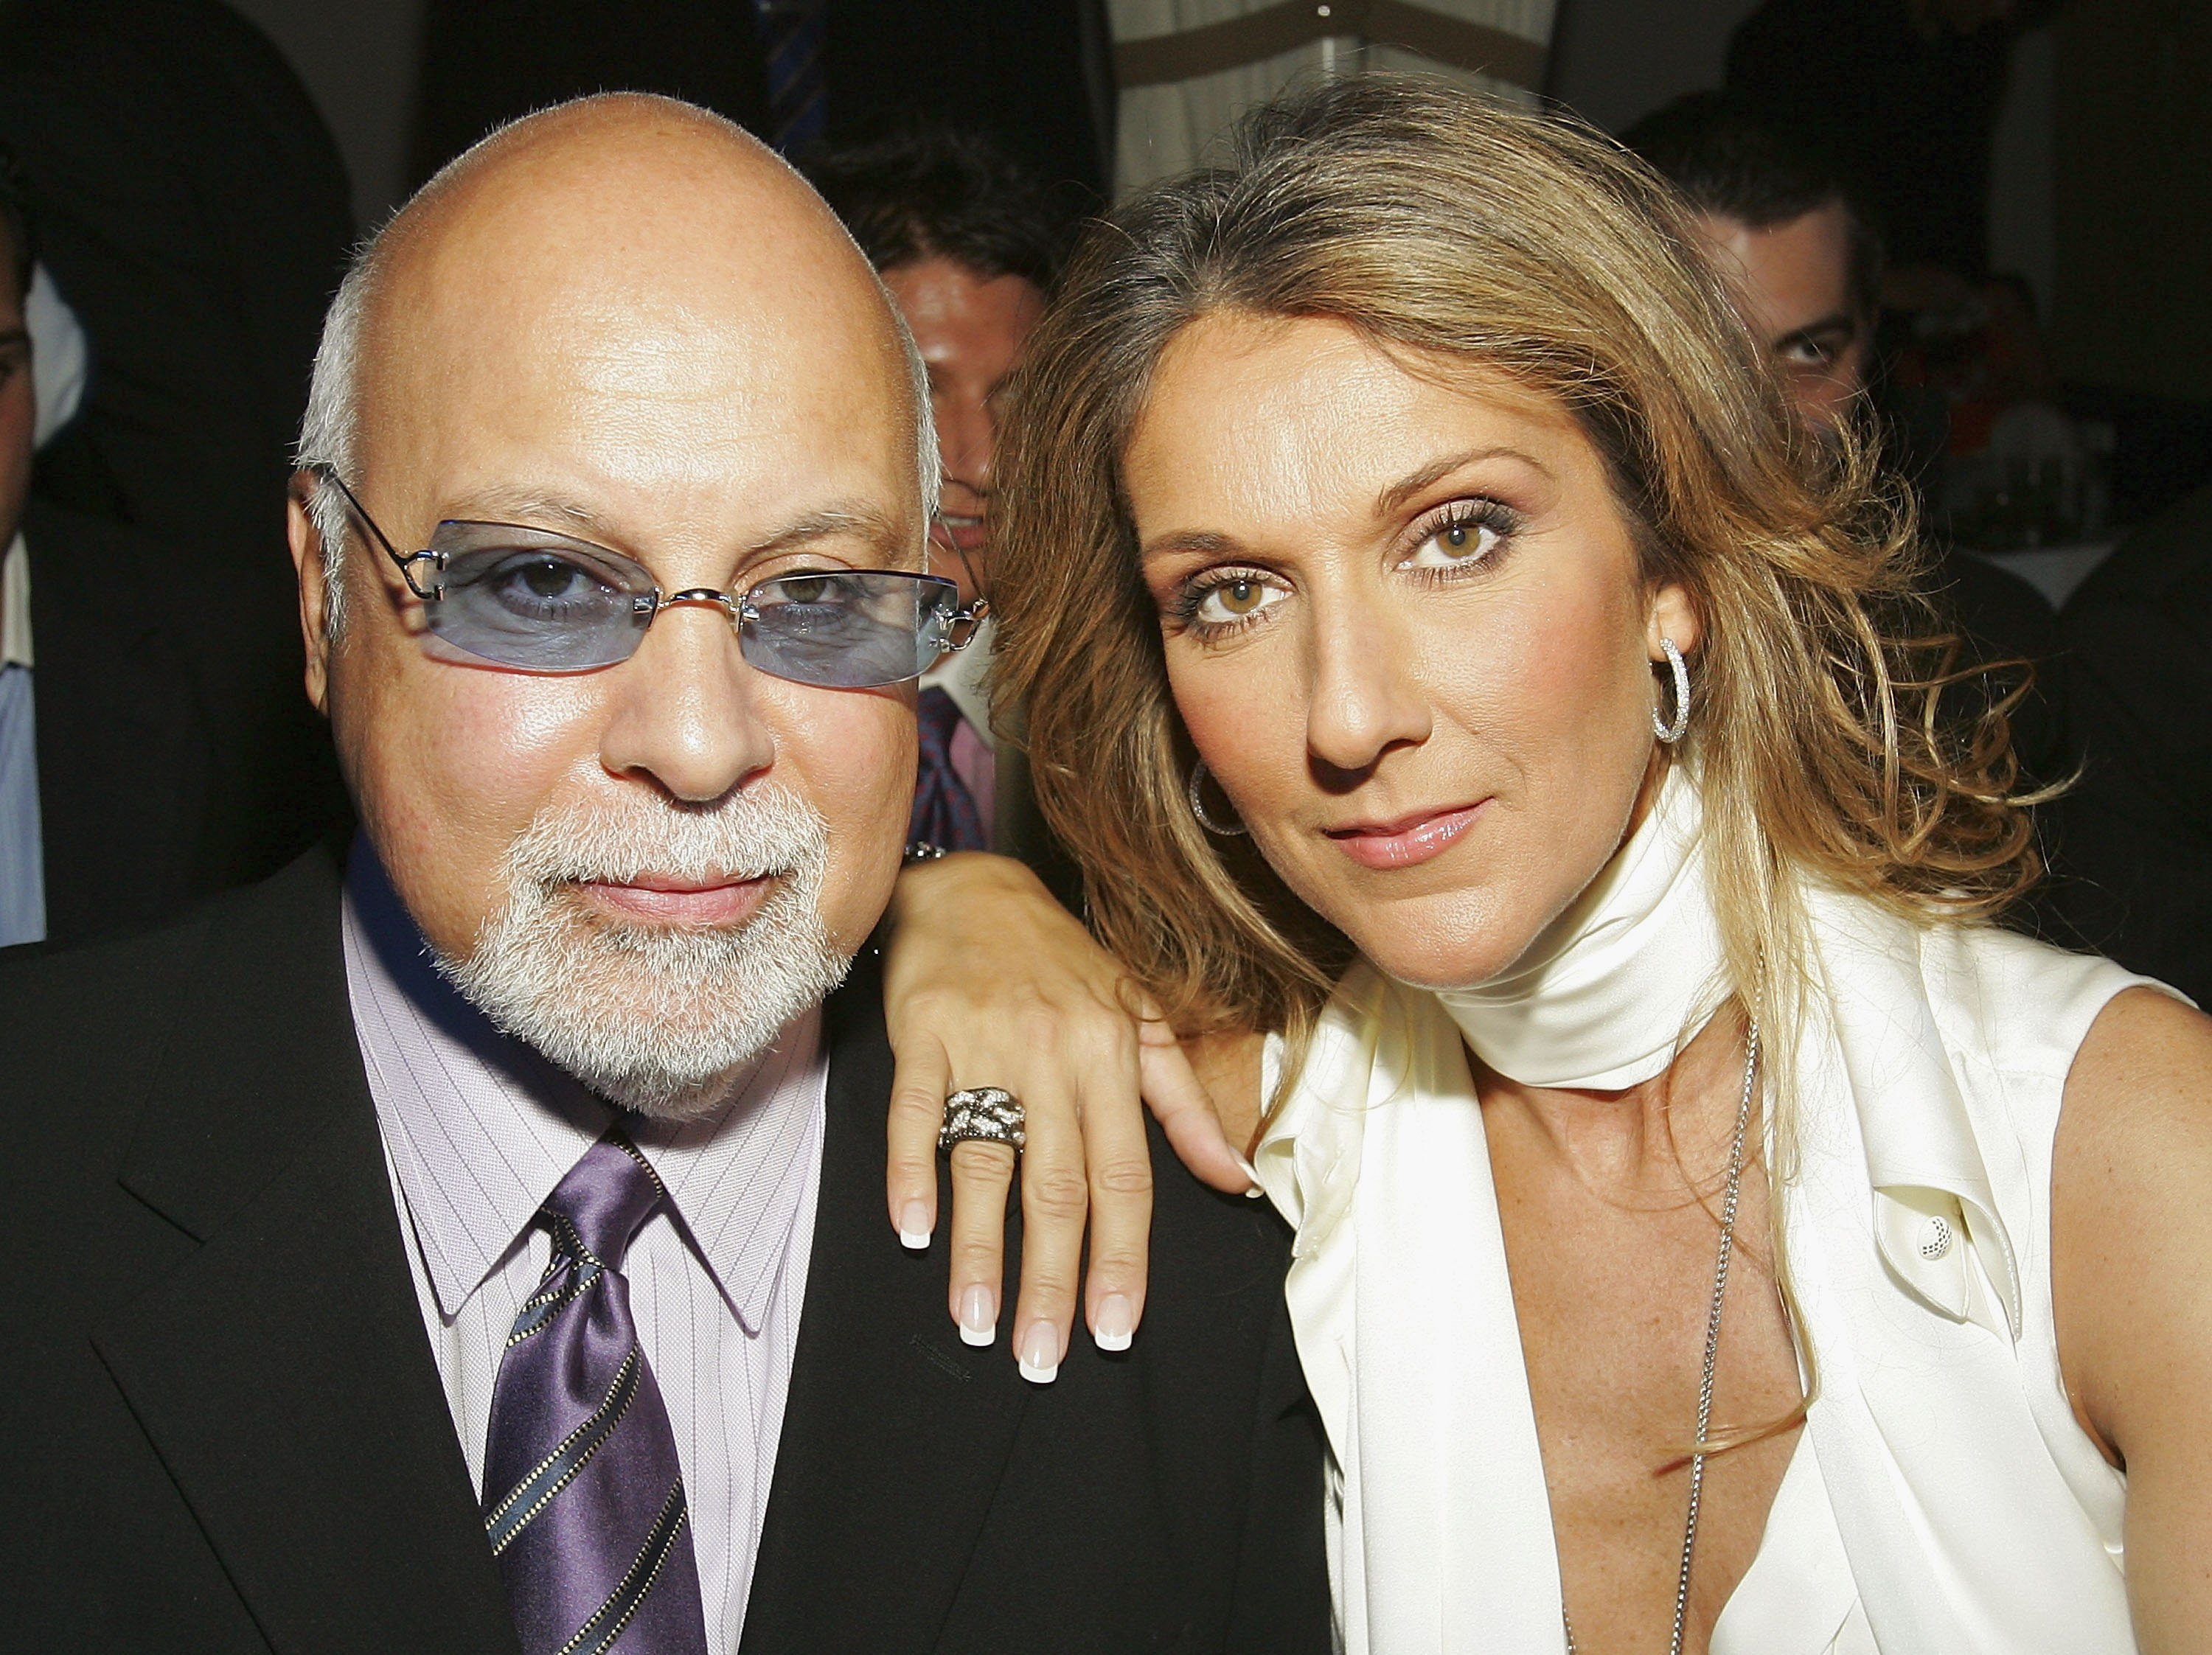 Singer Celine Dion (R) and her husband and her late-husband Rene Angelil pictured before a fashion show by jewelry designer Chris Aire, 2006 Las Vegas, Nevada.   Photo: Getty Images